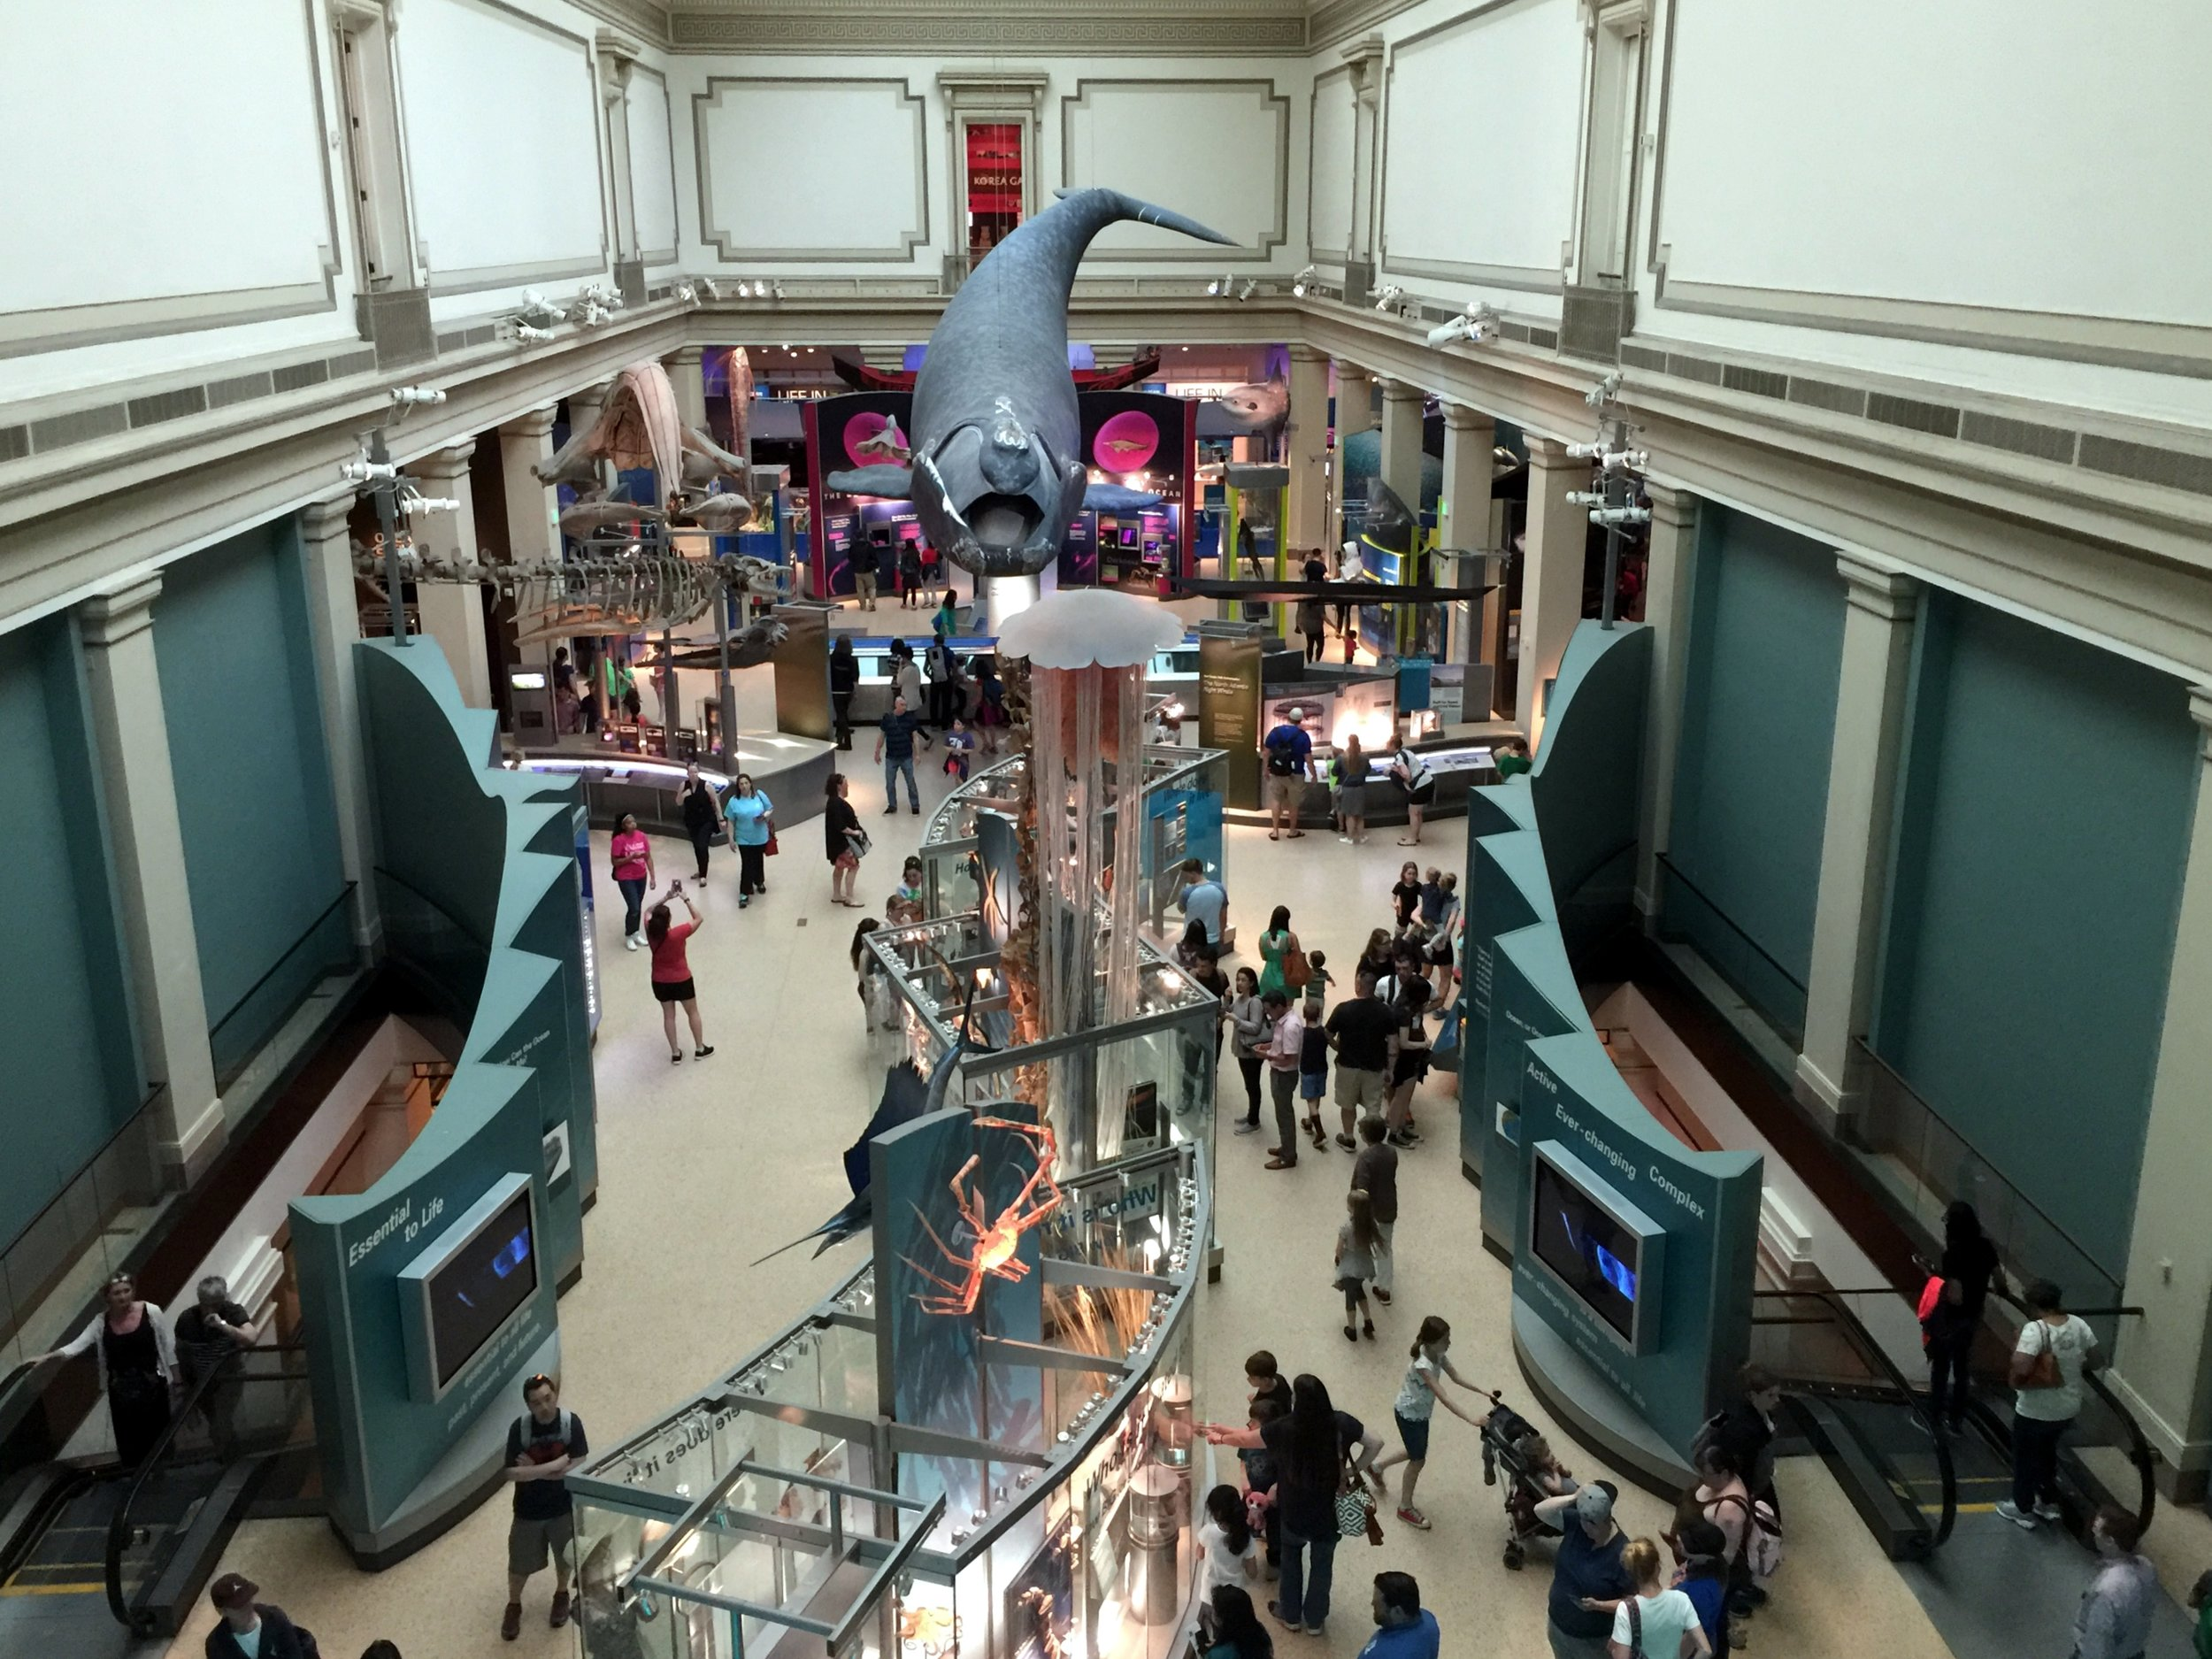 Ocean_Hall_Smithsonian_Museum_of_Natural_History.jpg